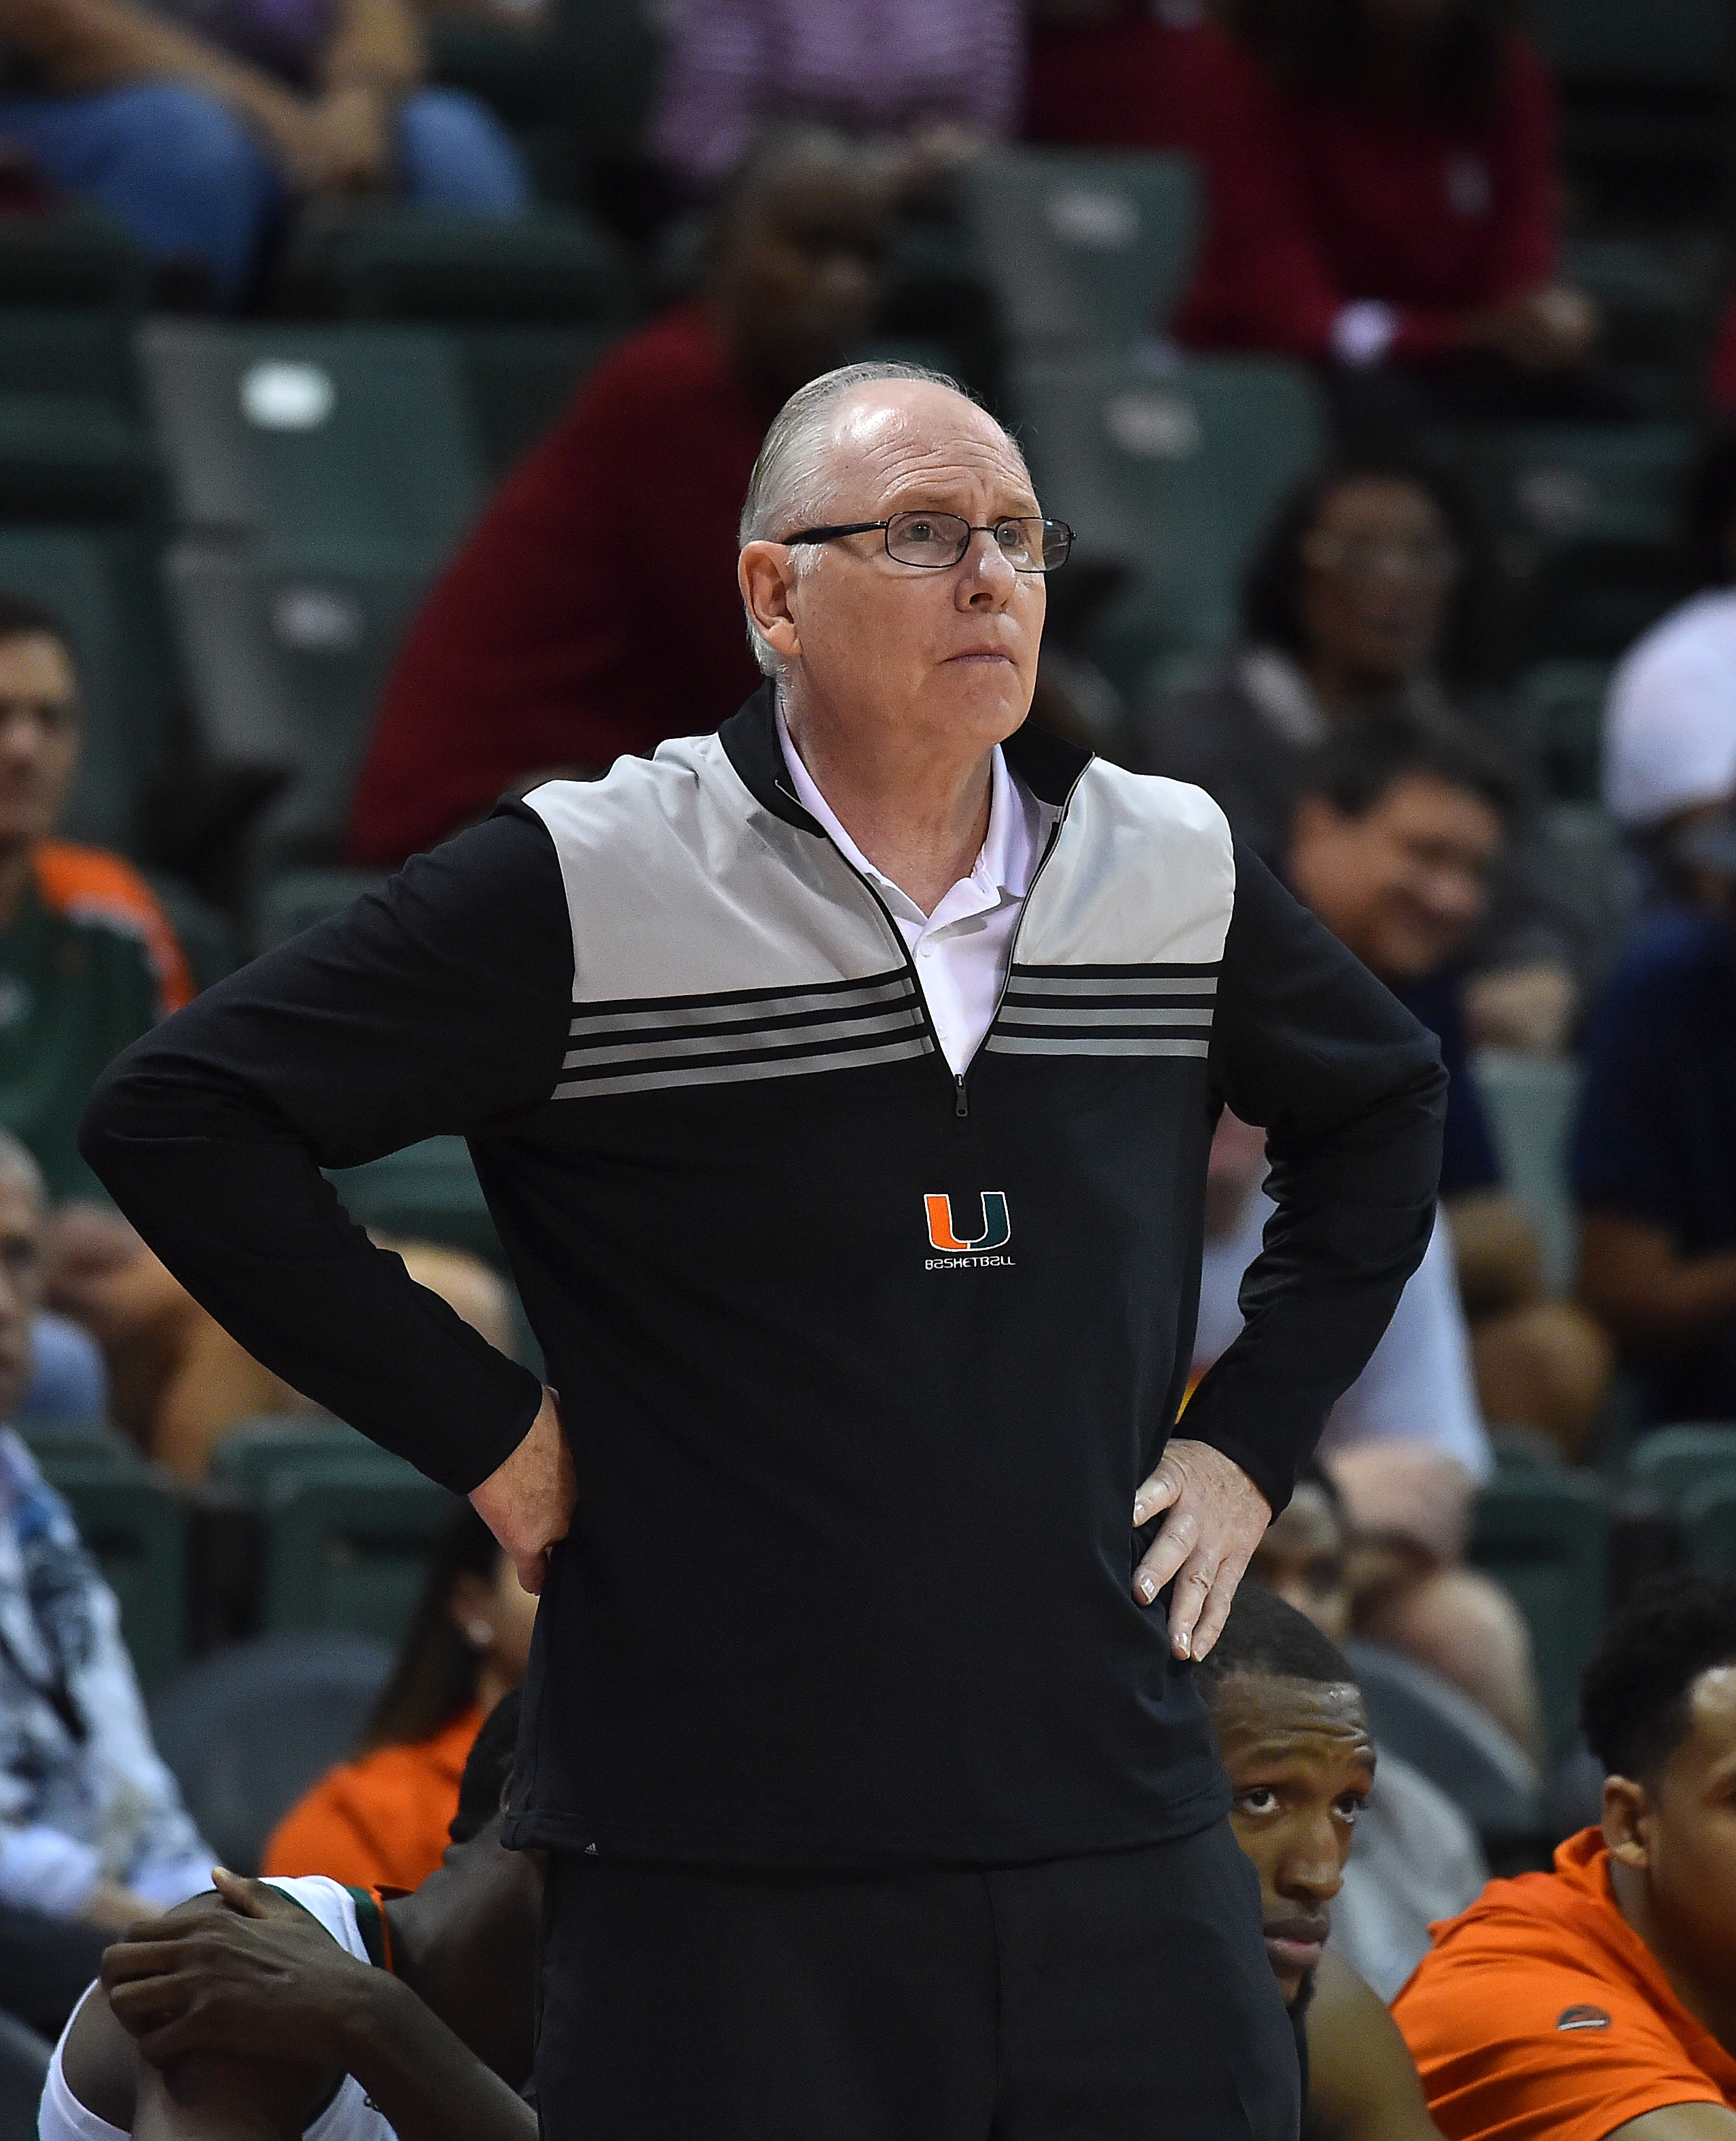 Nov 24, 2016; Kissimmee, FL, USA; Miami Hurricanes head coach Jim Larranaga looks on in the game against the Stanford Cardinal during the second half at HP Field House. The Miami Hurricanes defeat the Stanford Cardinal 67-53. Mandatory Credit: Jasen Vinlove-USA TODAY Sports